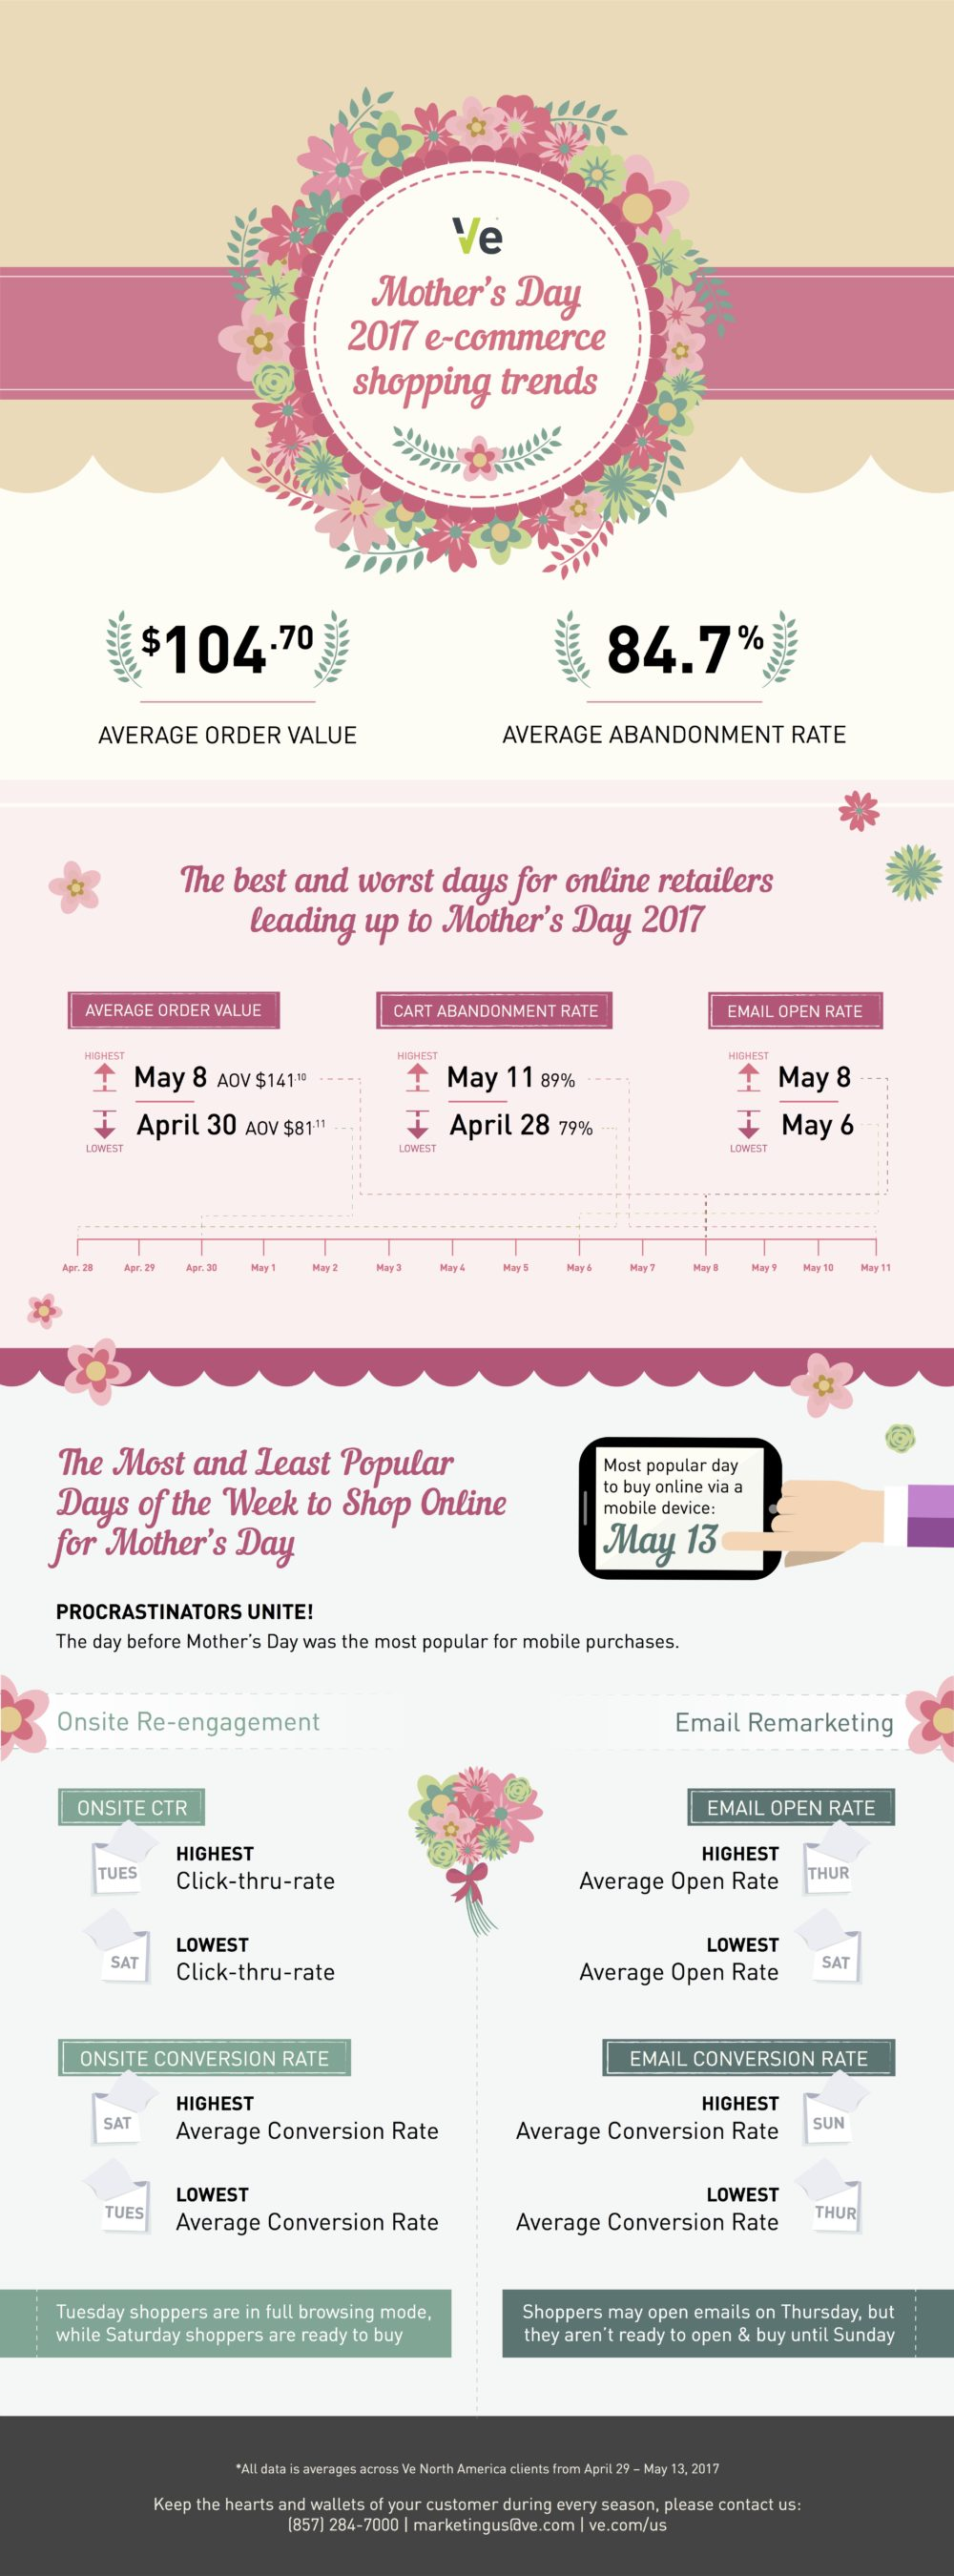 Mother's Father's Day Ecommerce Trends